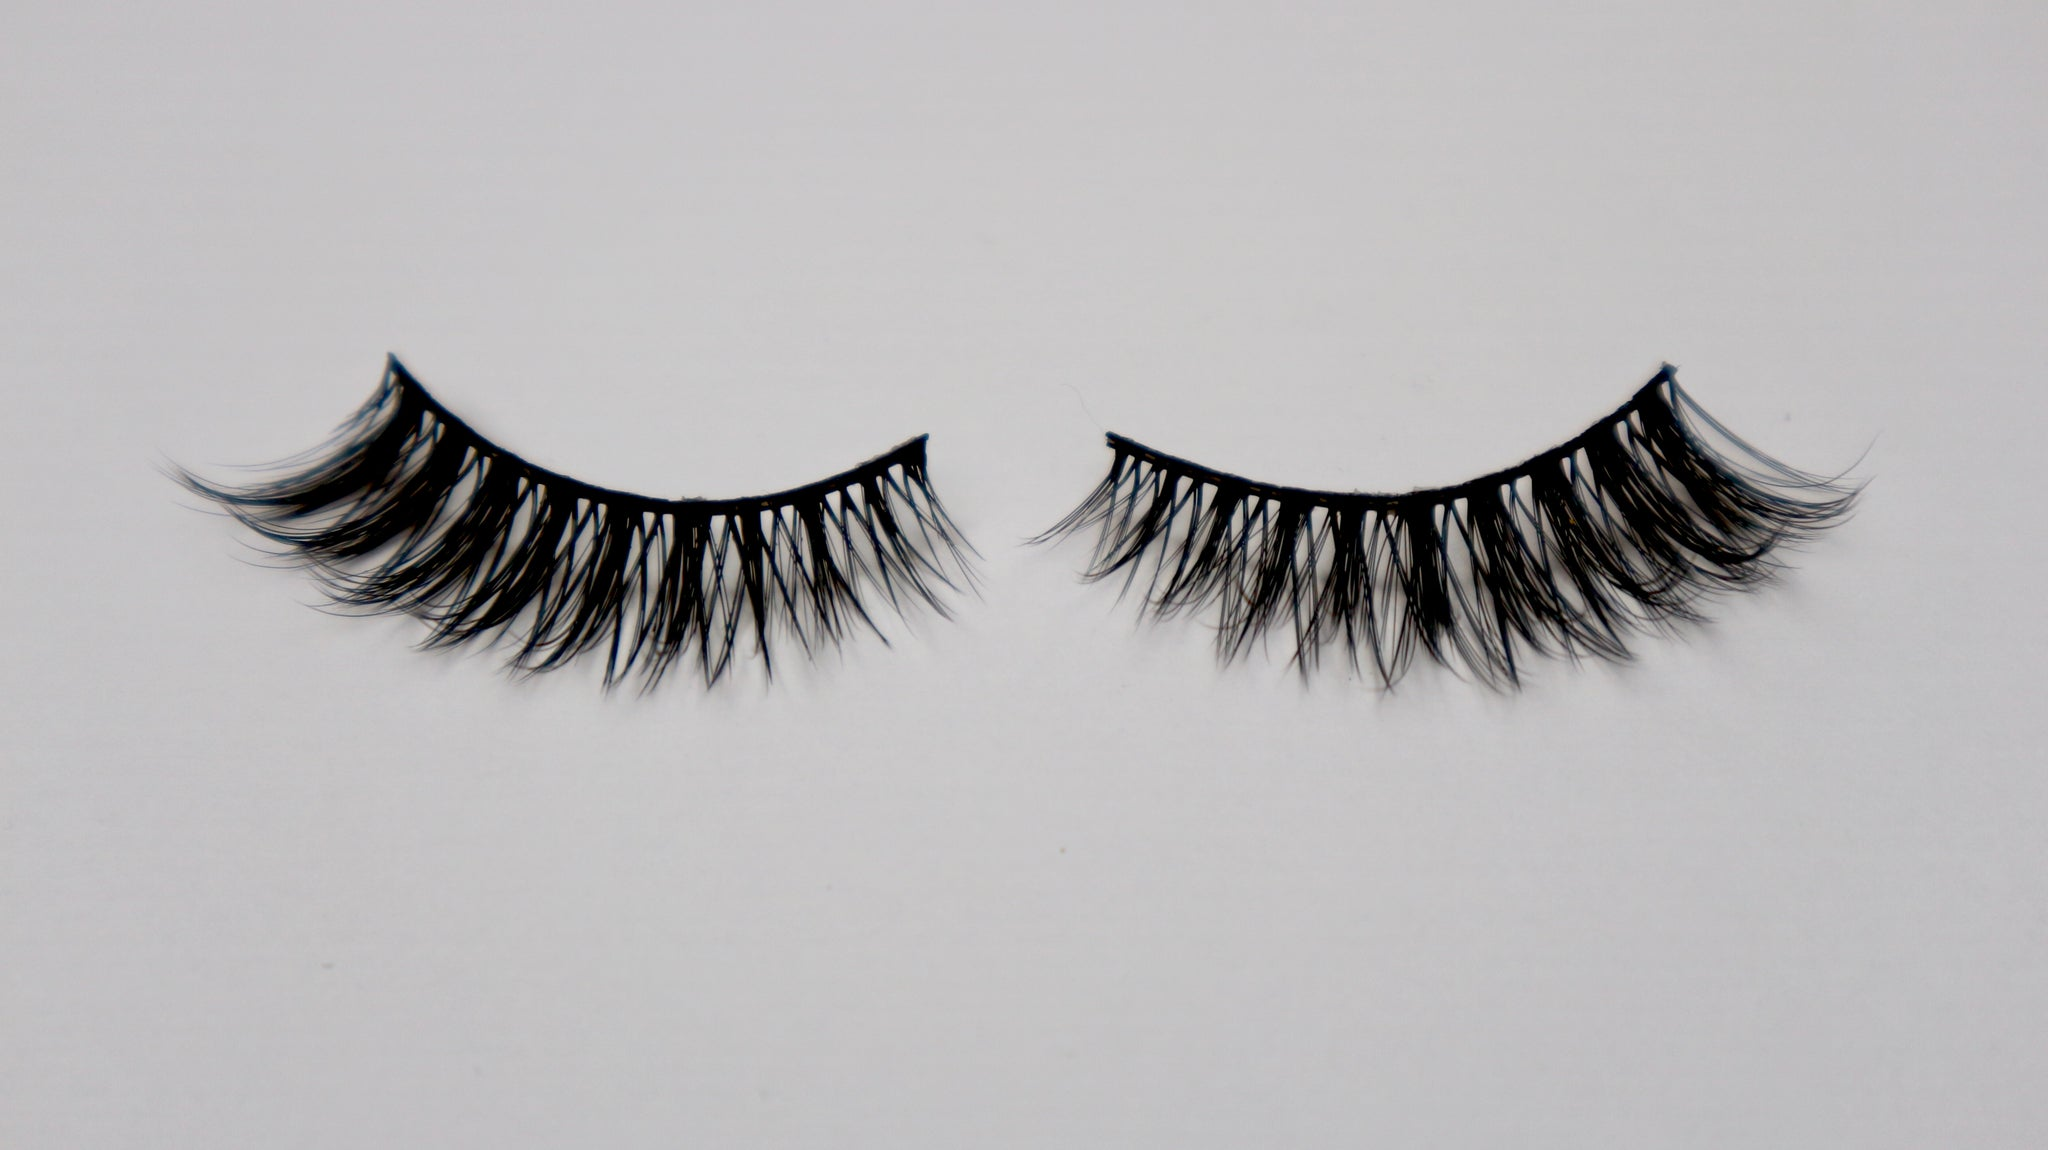 bacf6a5488f ... Load image into Gallery viewer, winged and full volume reusable fake  eyelashes by wispy winks